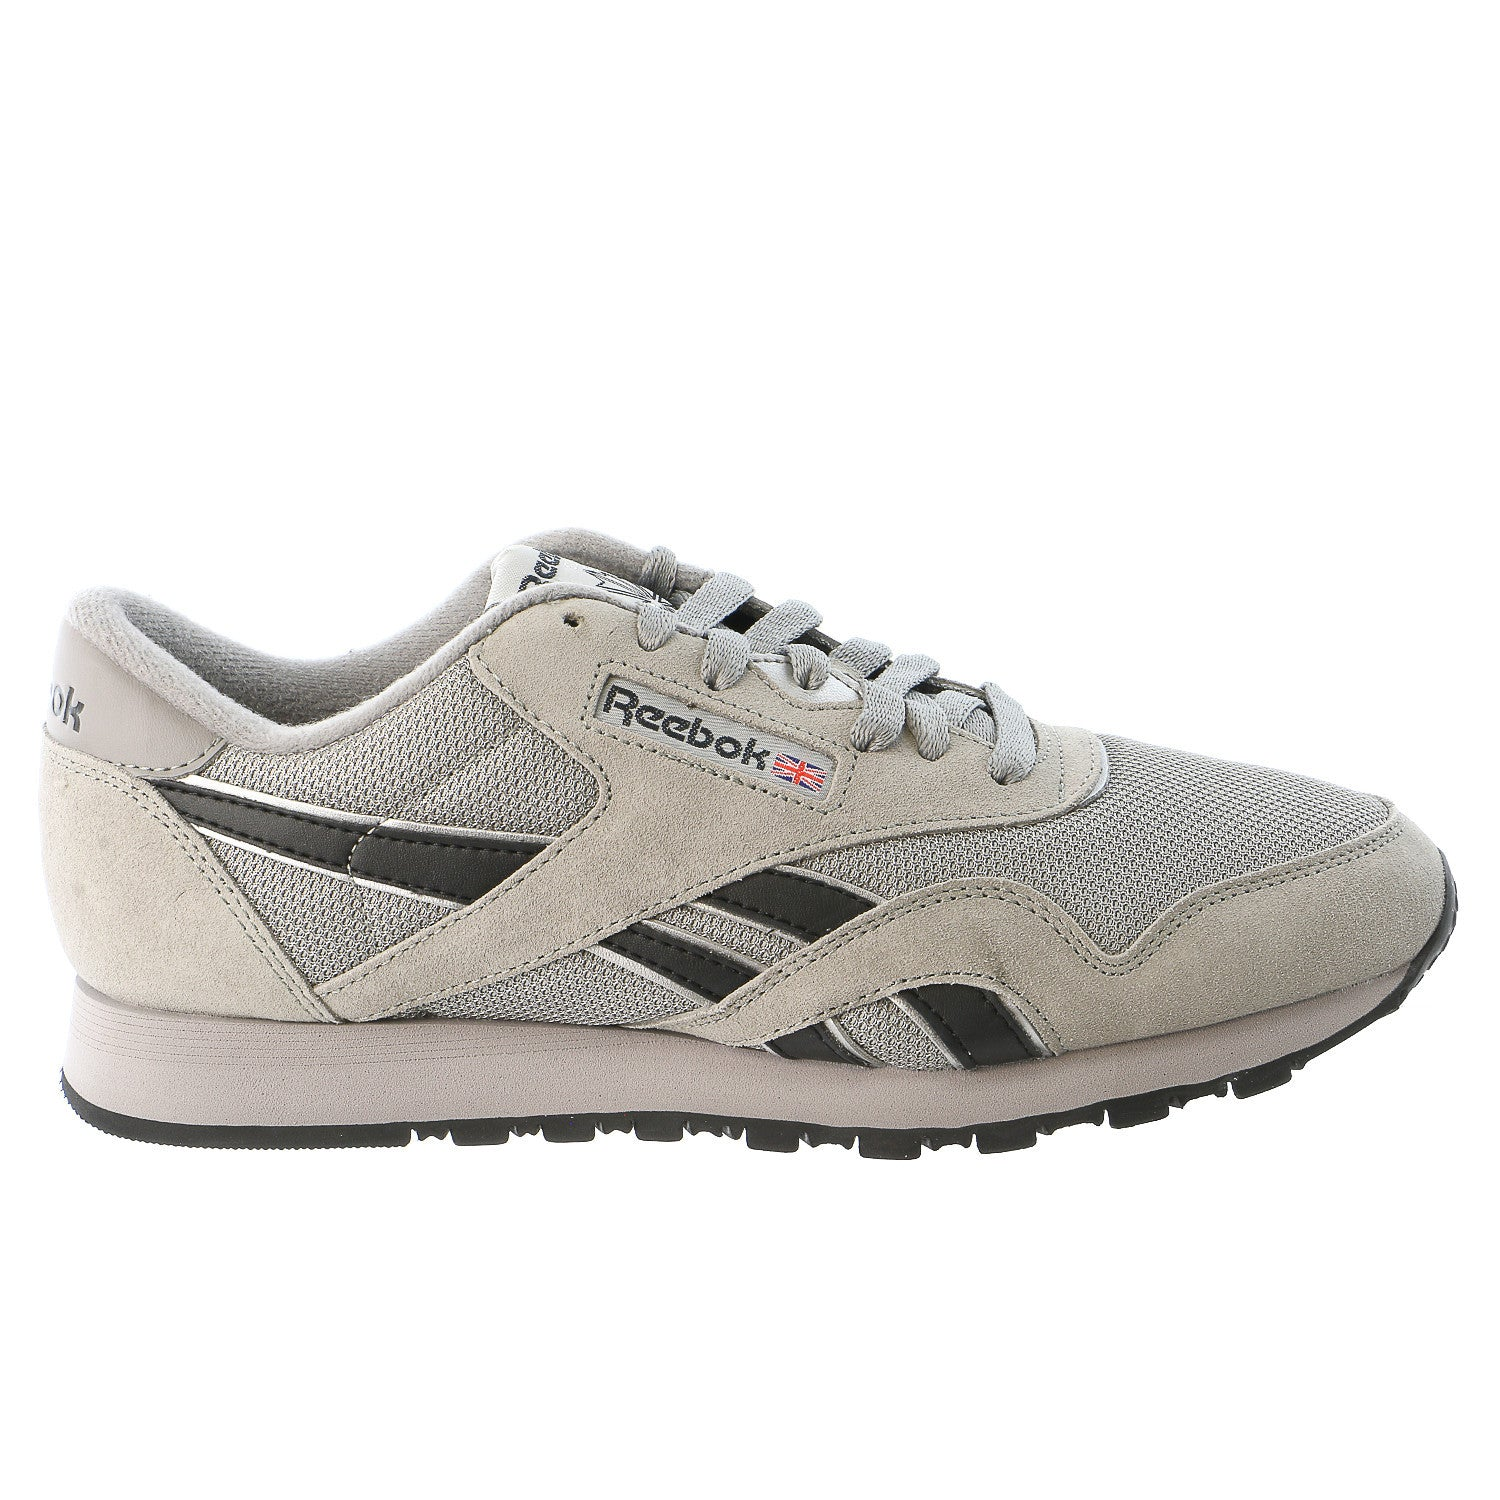 3e08c642b98 Reebok Classic Nylon Fashion Sneaker Shoe - Black Grey White - Mens ...